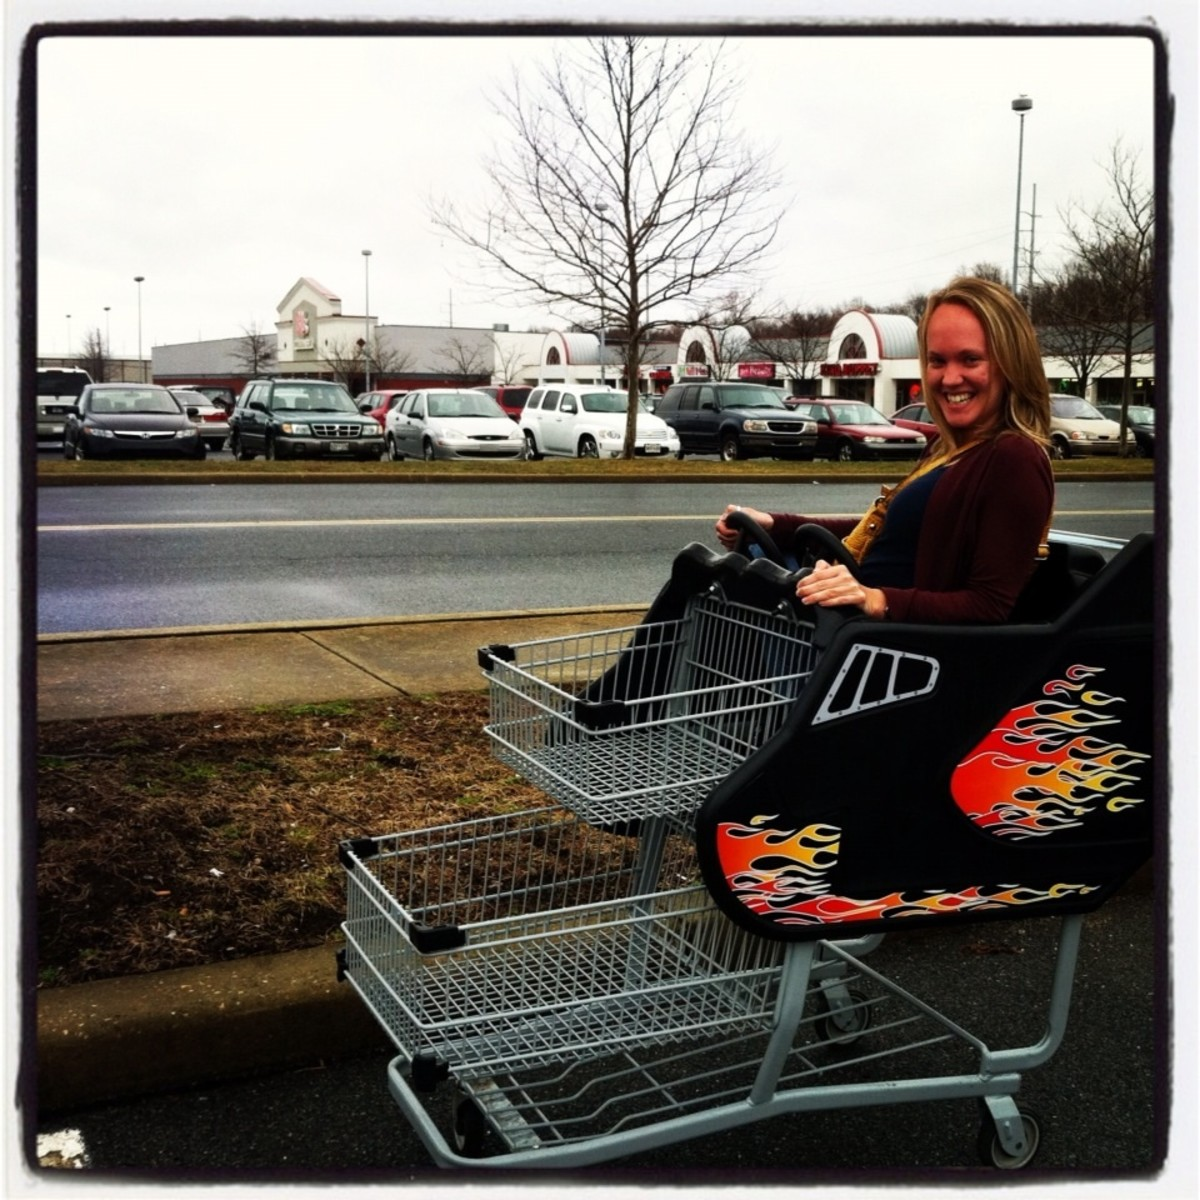 I simply couldn't pass up a photo op with a flaming grocery cart